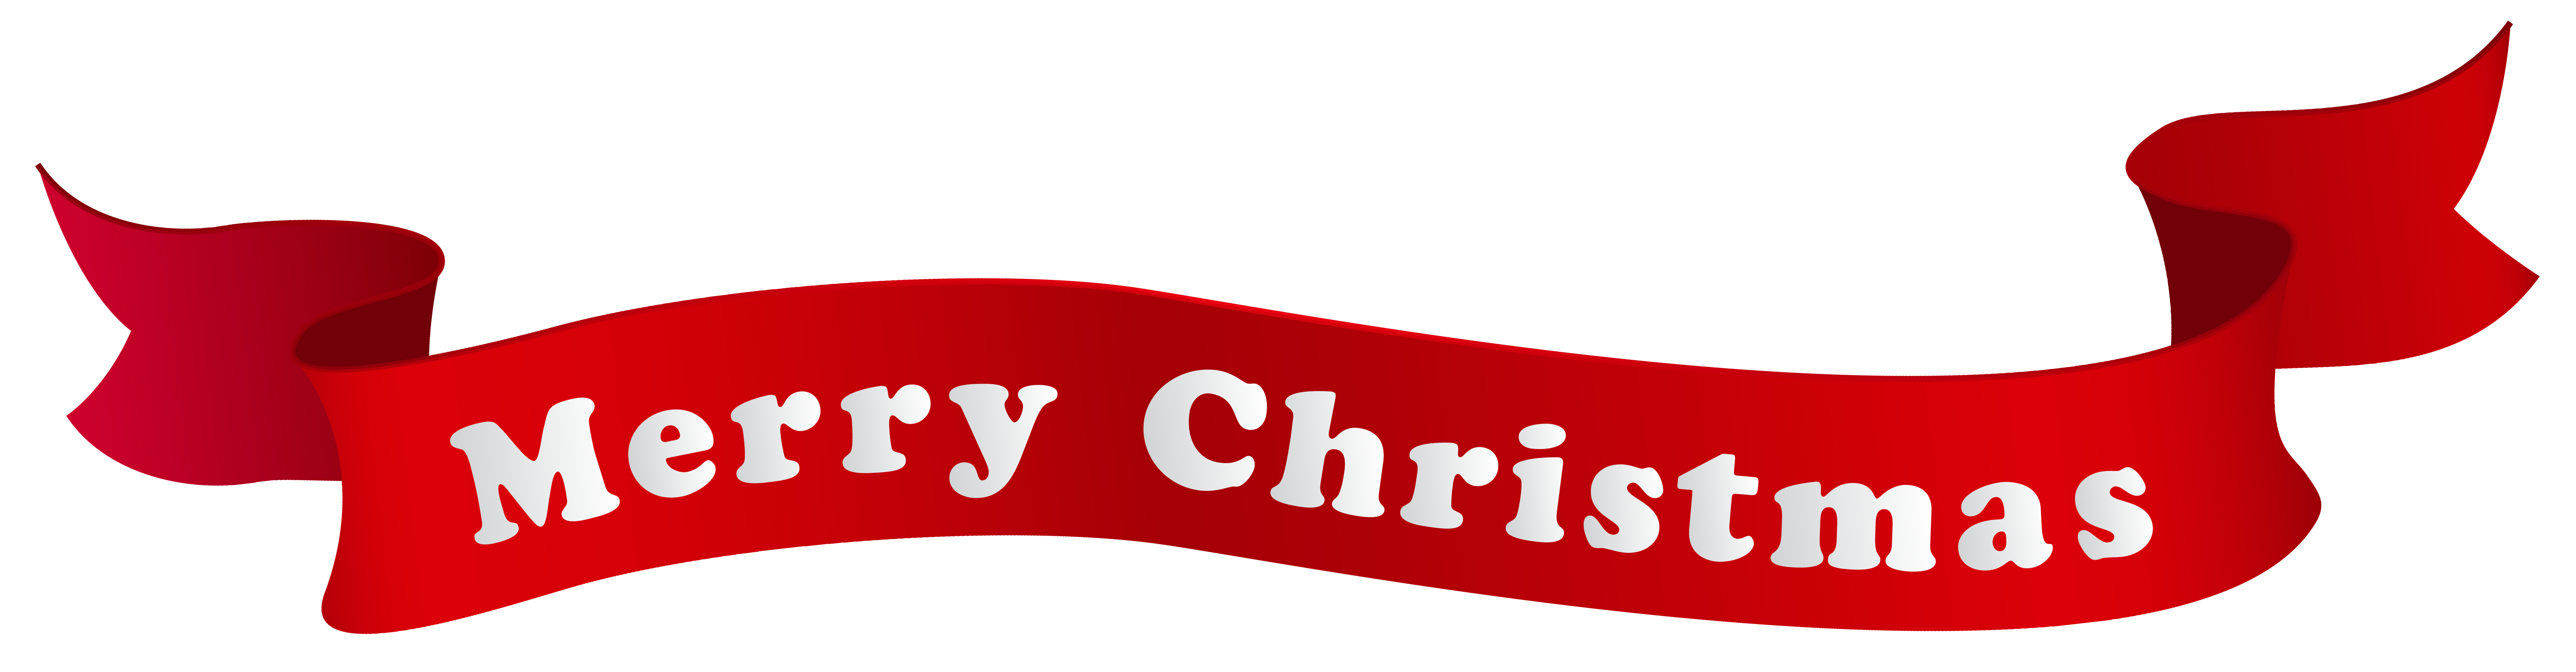 graphic black and white Images of merry banners. Christmas clipart banner.